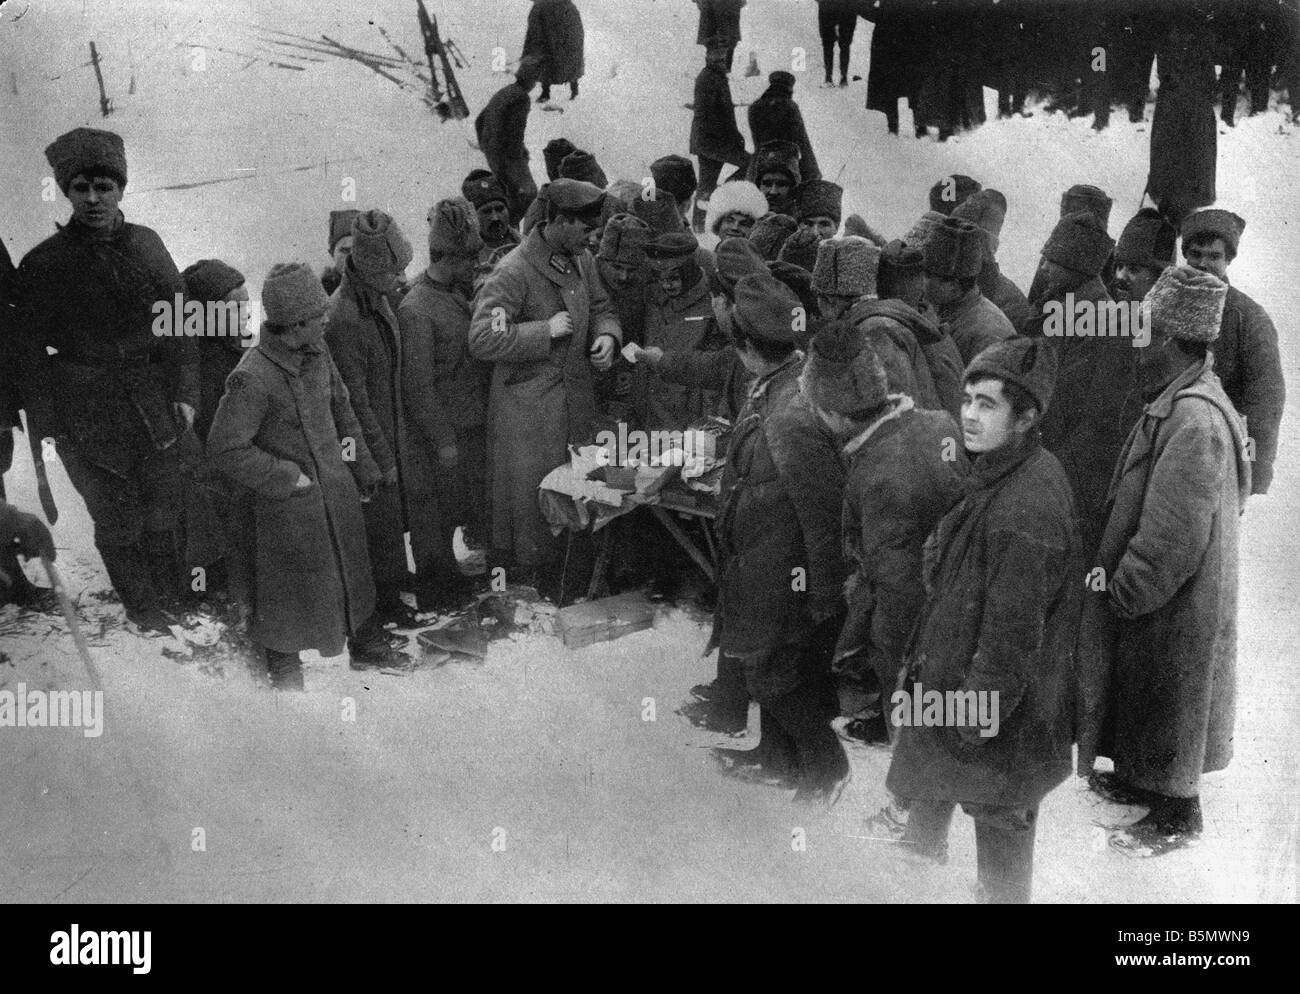 9RD 1917 12 15 A1 B Russians shopping 1917 Brest Litovsk Great War 1914 18 Armistice of Brest Litovsk between Russia - Stock Image